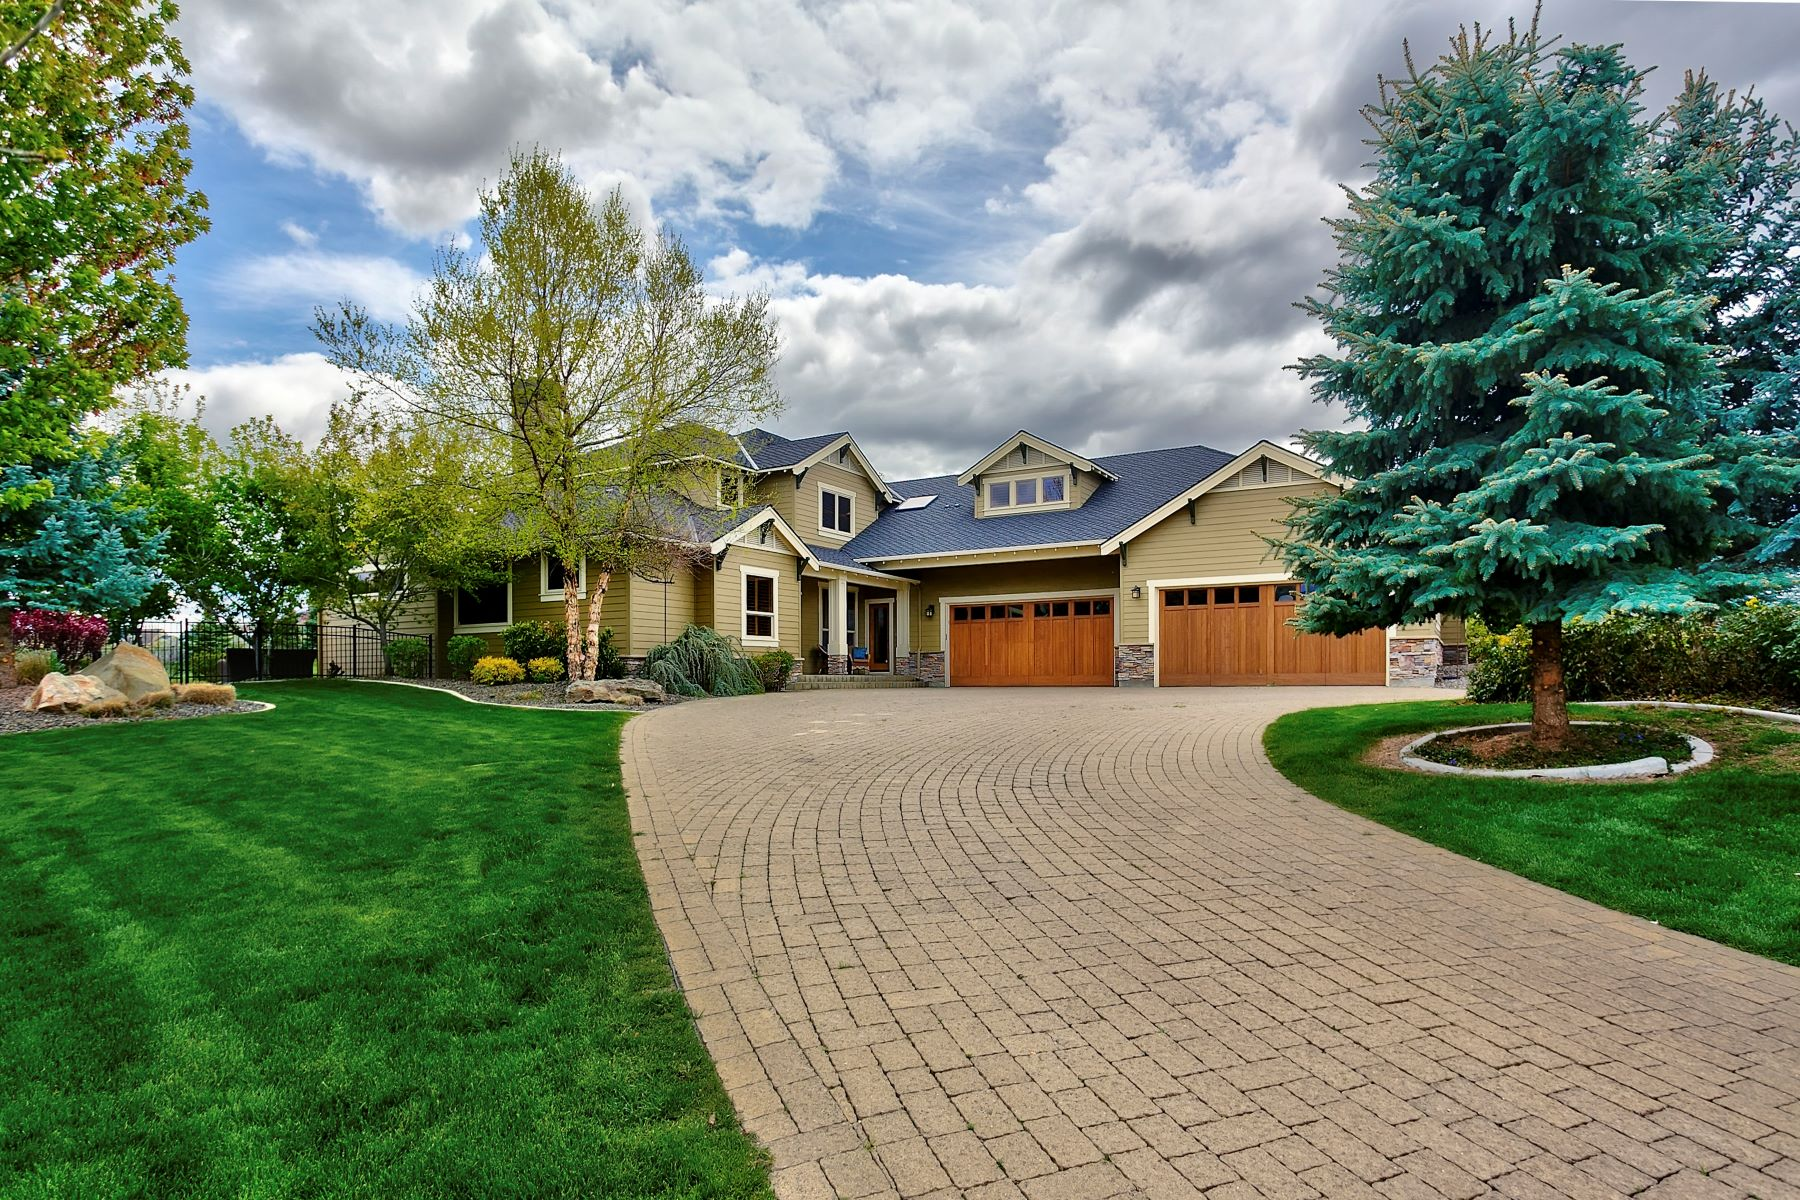 Single Family Home for Sale at 12914 Town Ridge Road, Boise 12914 N Town Ridge Rd Boise, Idaho 83714 United States